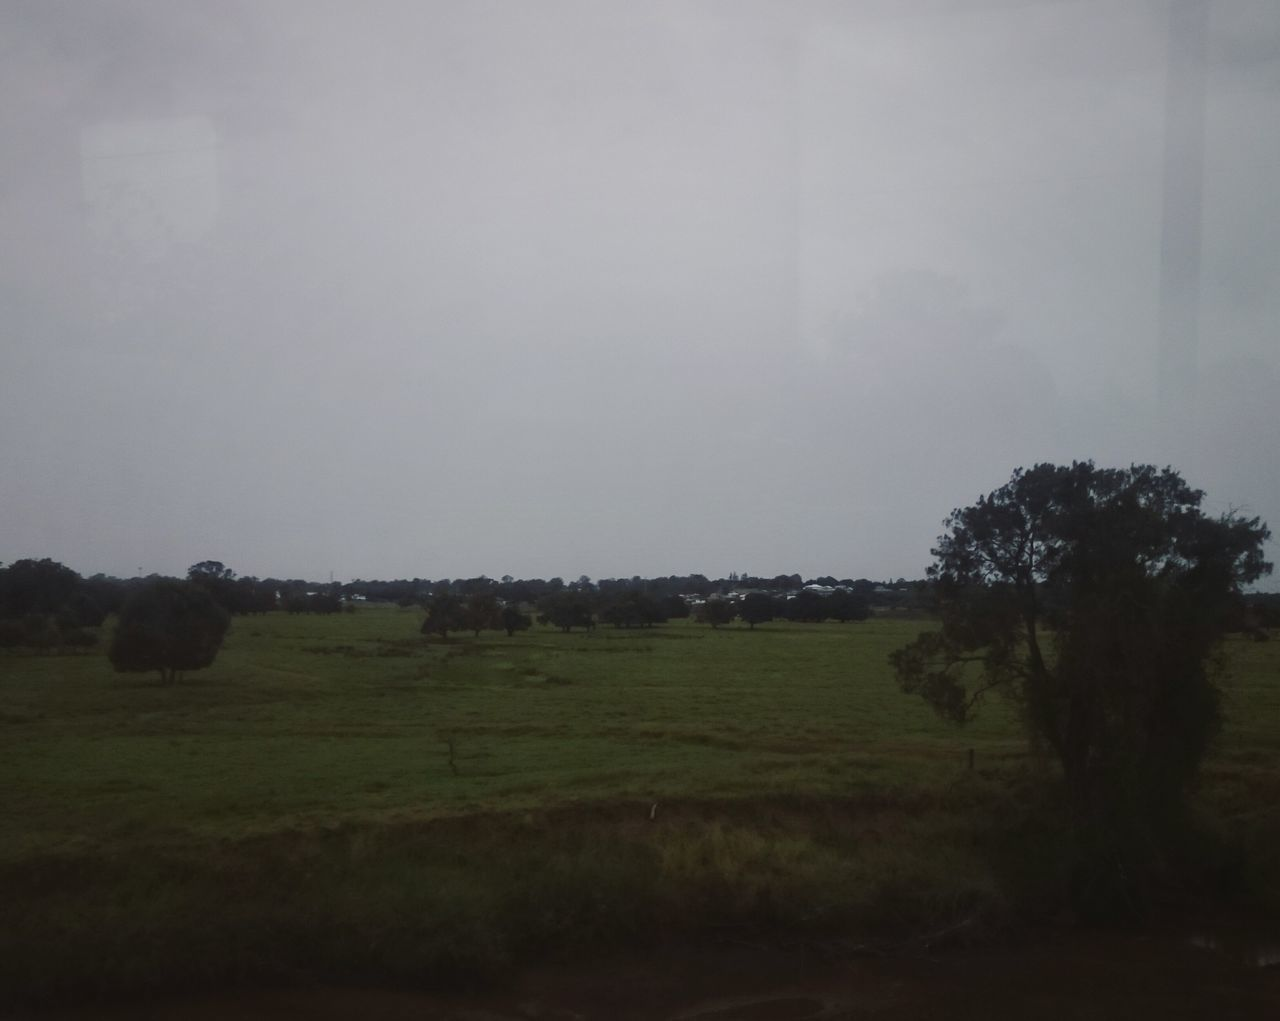 A beautiful landscape I always love travelling through on the train home. Nature Sky No People Beauty In Nature Landscape Scenics Outdoors Grass Agriculture Trees Cloudy Day Cloudy Overcast Gloomy Weather Fields And Sky Fields Tree Grey Sky Gray Sky Melancholic Landscapes Meadows And Fields Meadows